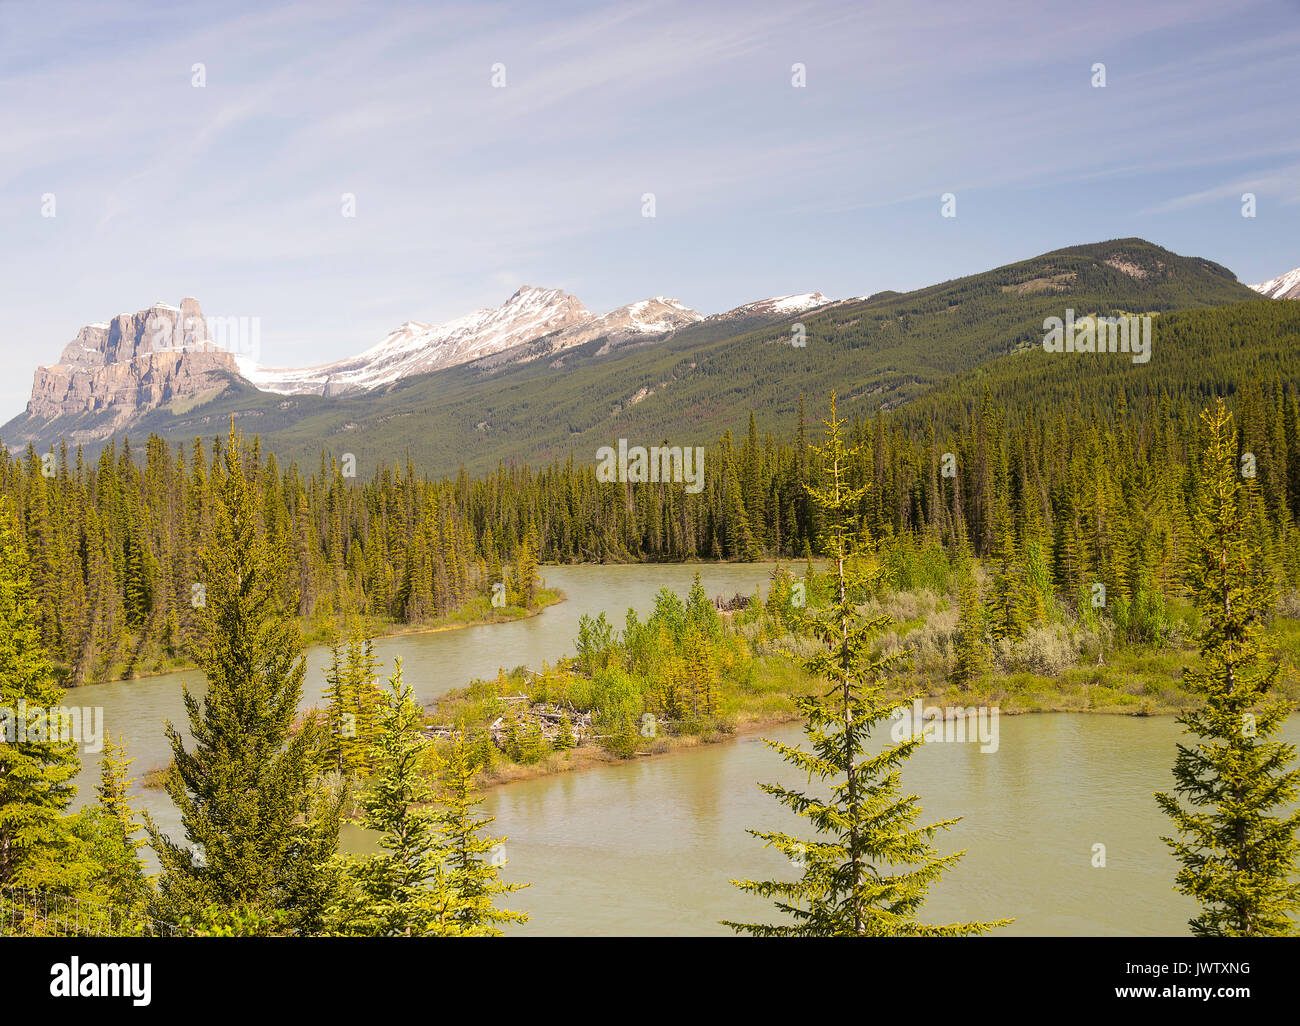 Castle Mountain and the Bow River near Banff in Banff National Park Alberta Canada - Stock Image